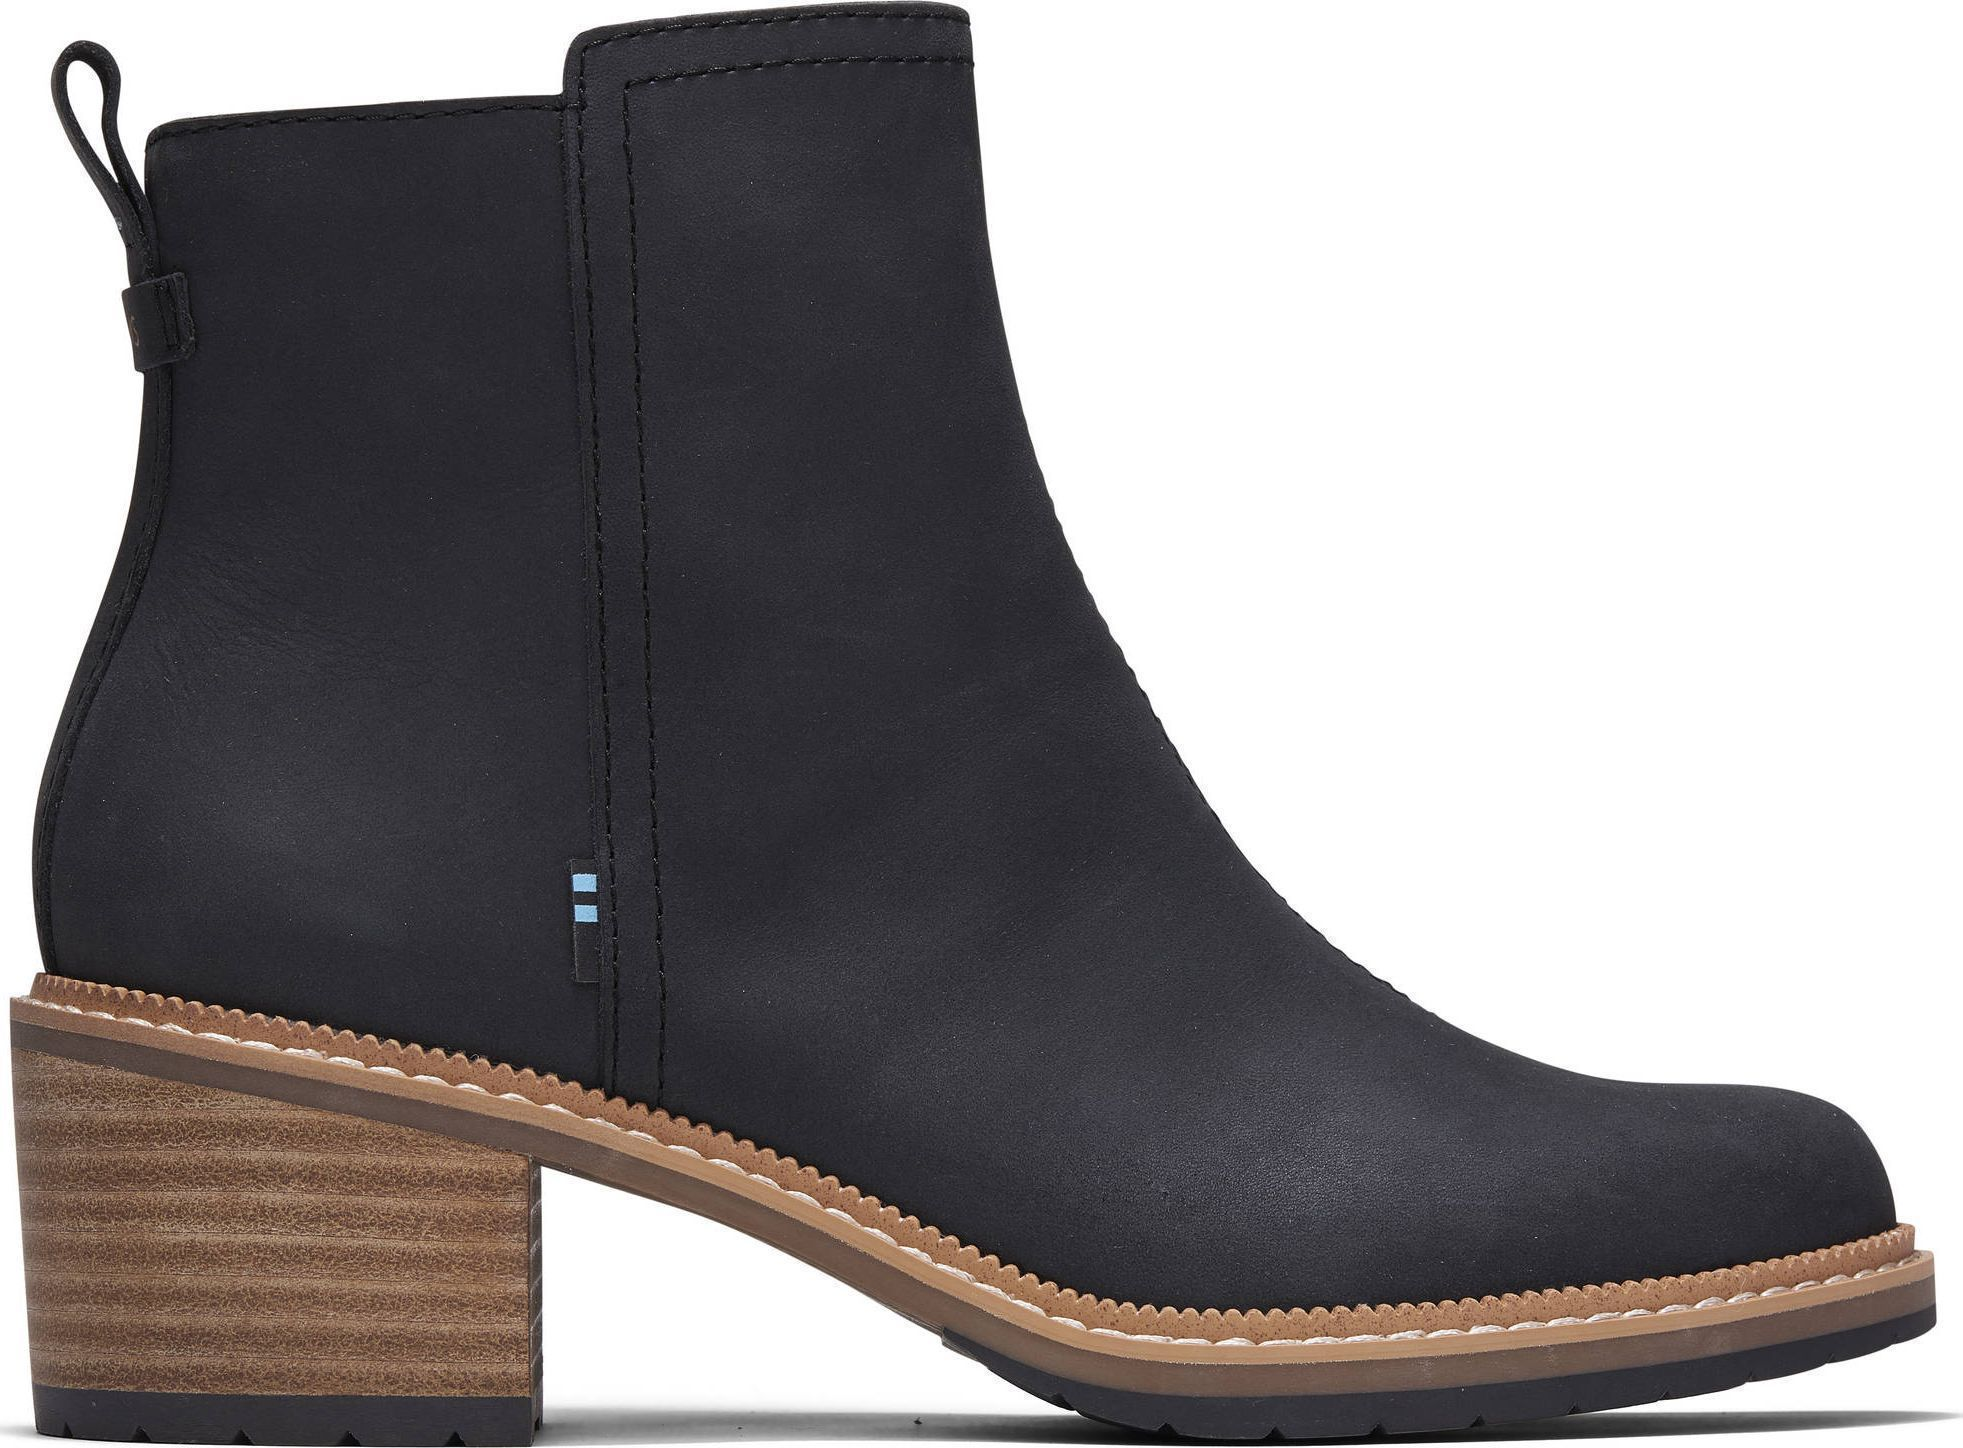 TOMS Smooth Waxy Leather Women's Marina Bootie Black 41